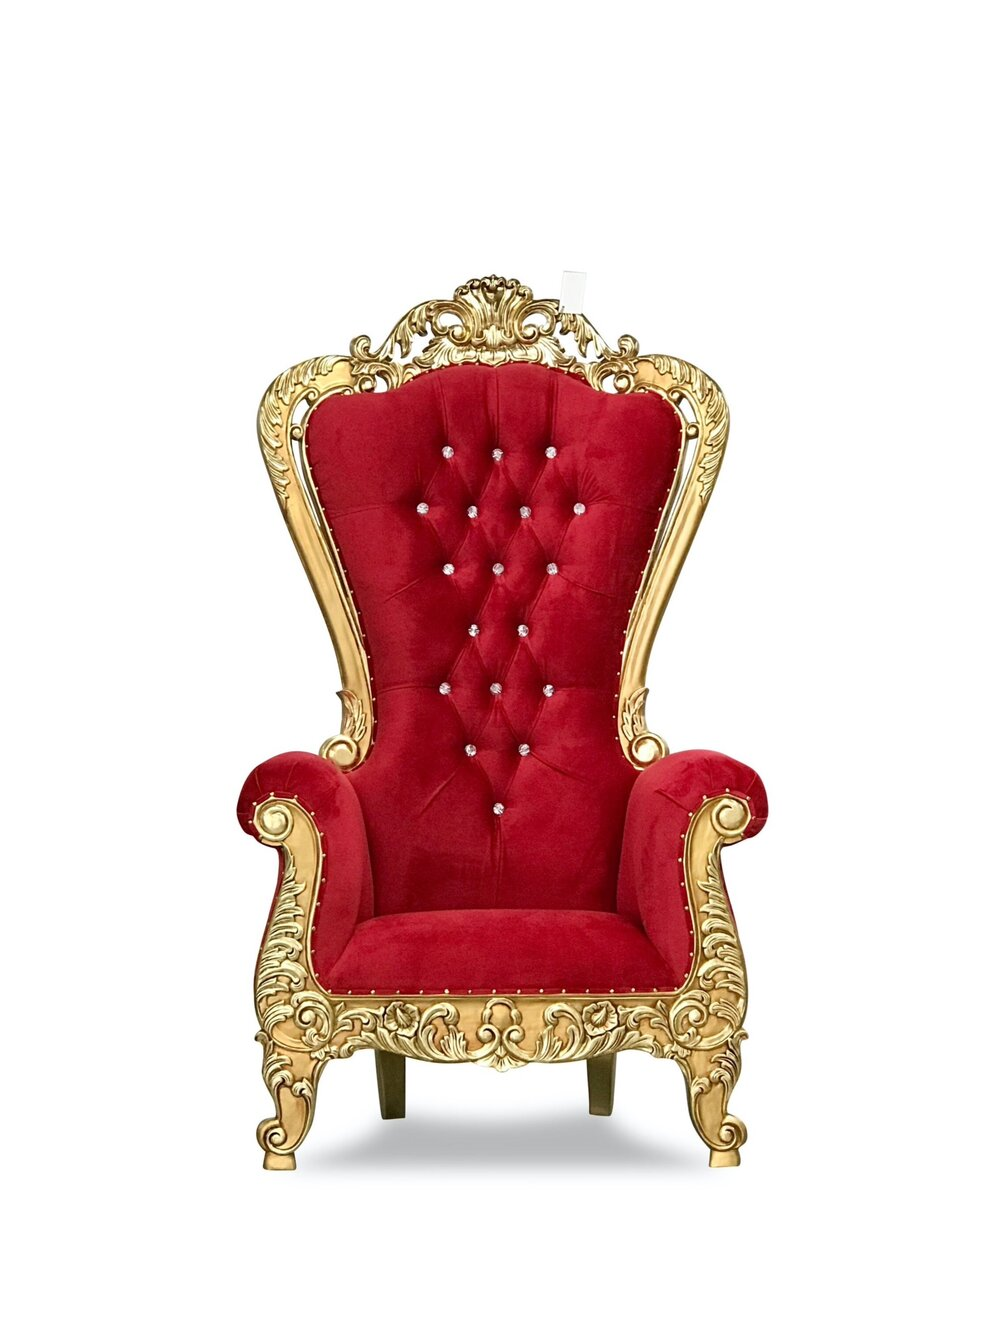 Red and gold Throne Chair Rentals